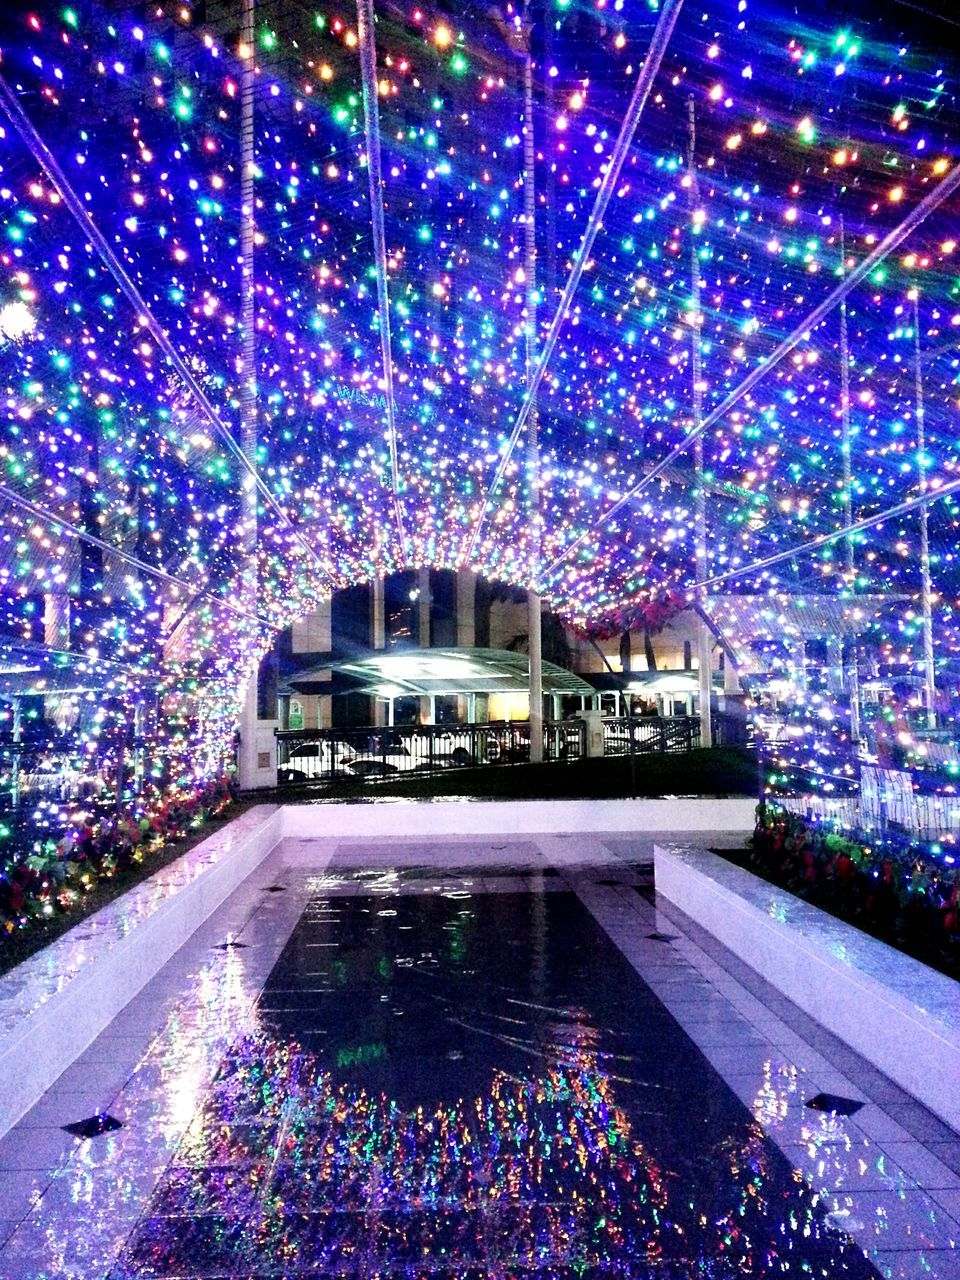 illuminated, water, swimming pool, night, outdoors, multi colored, architecture, no people, modern, ice rink